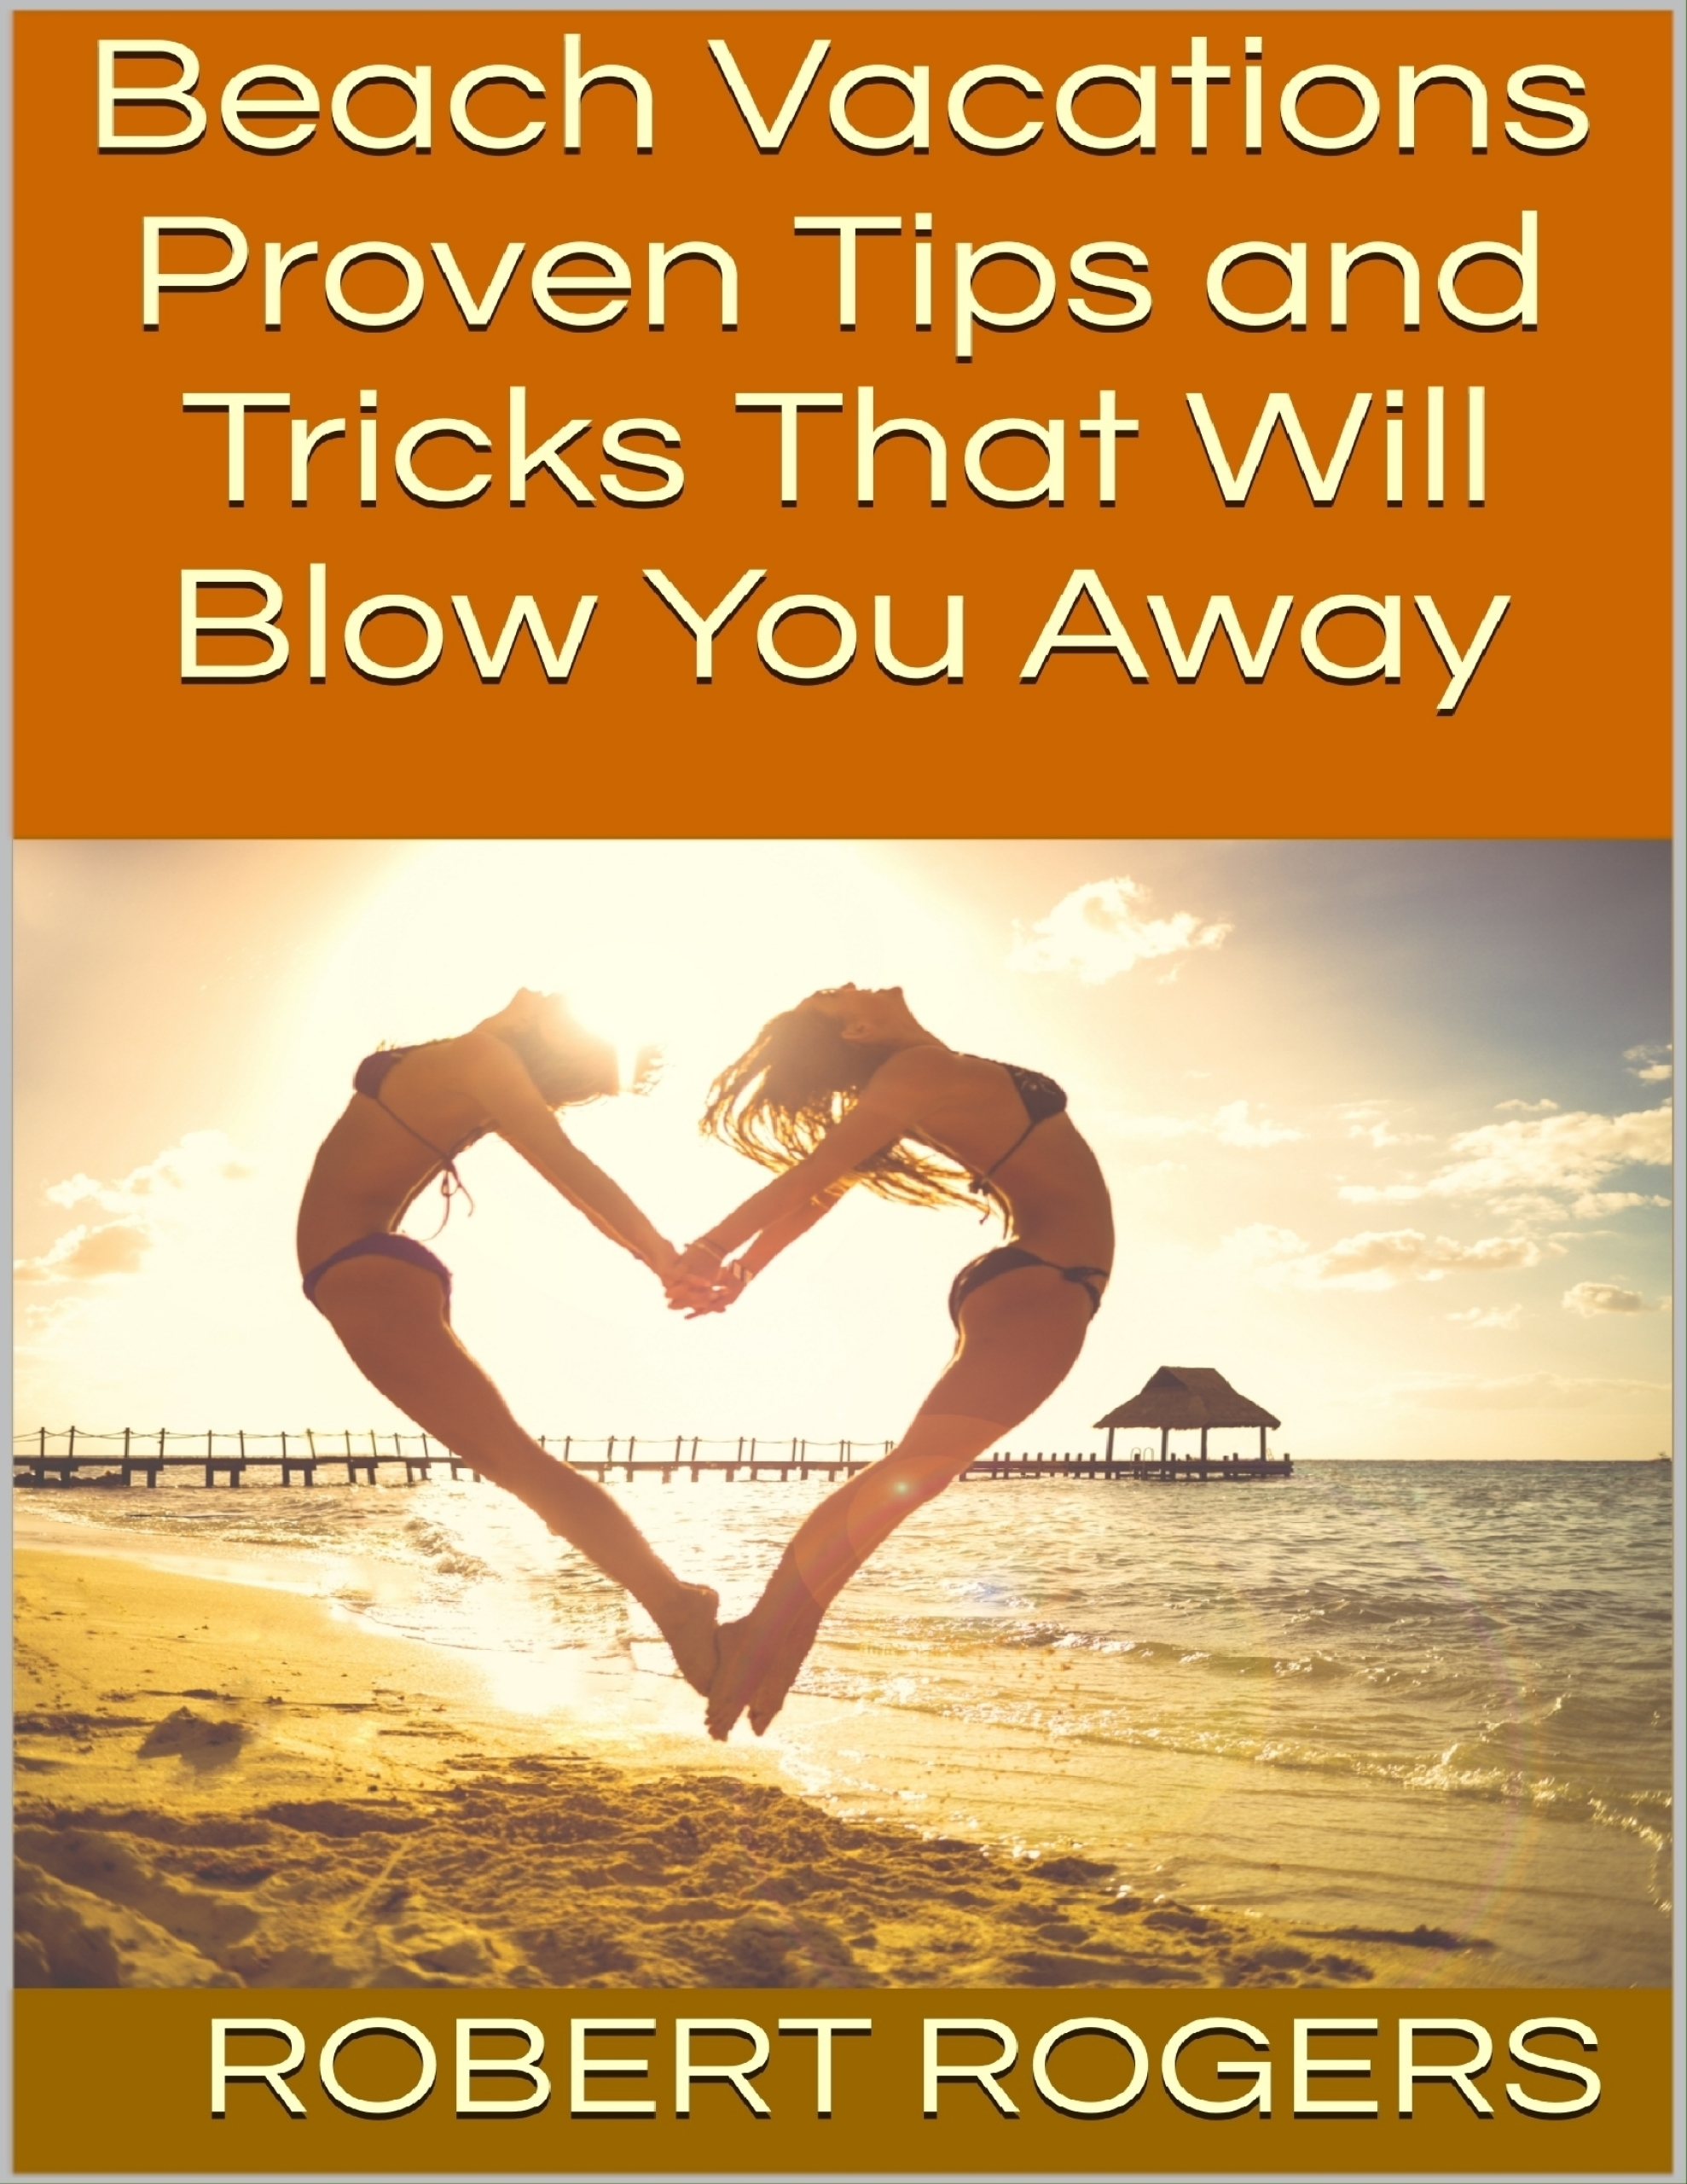 Beach Vacations: Proven Tips and Tricks That Will Blow You Away